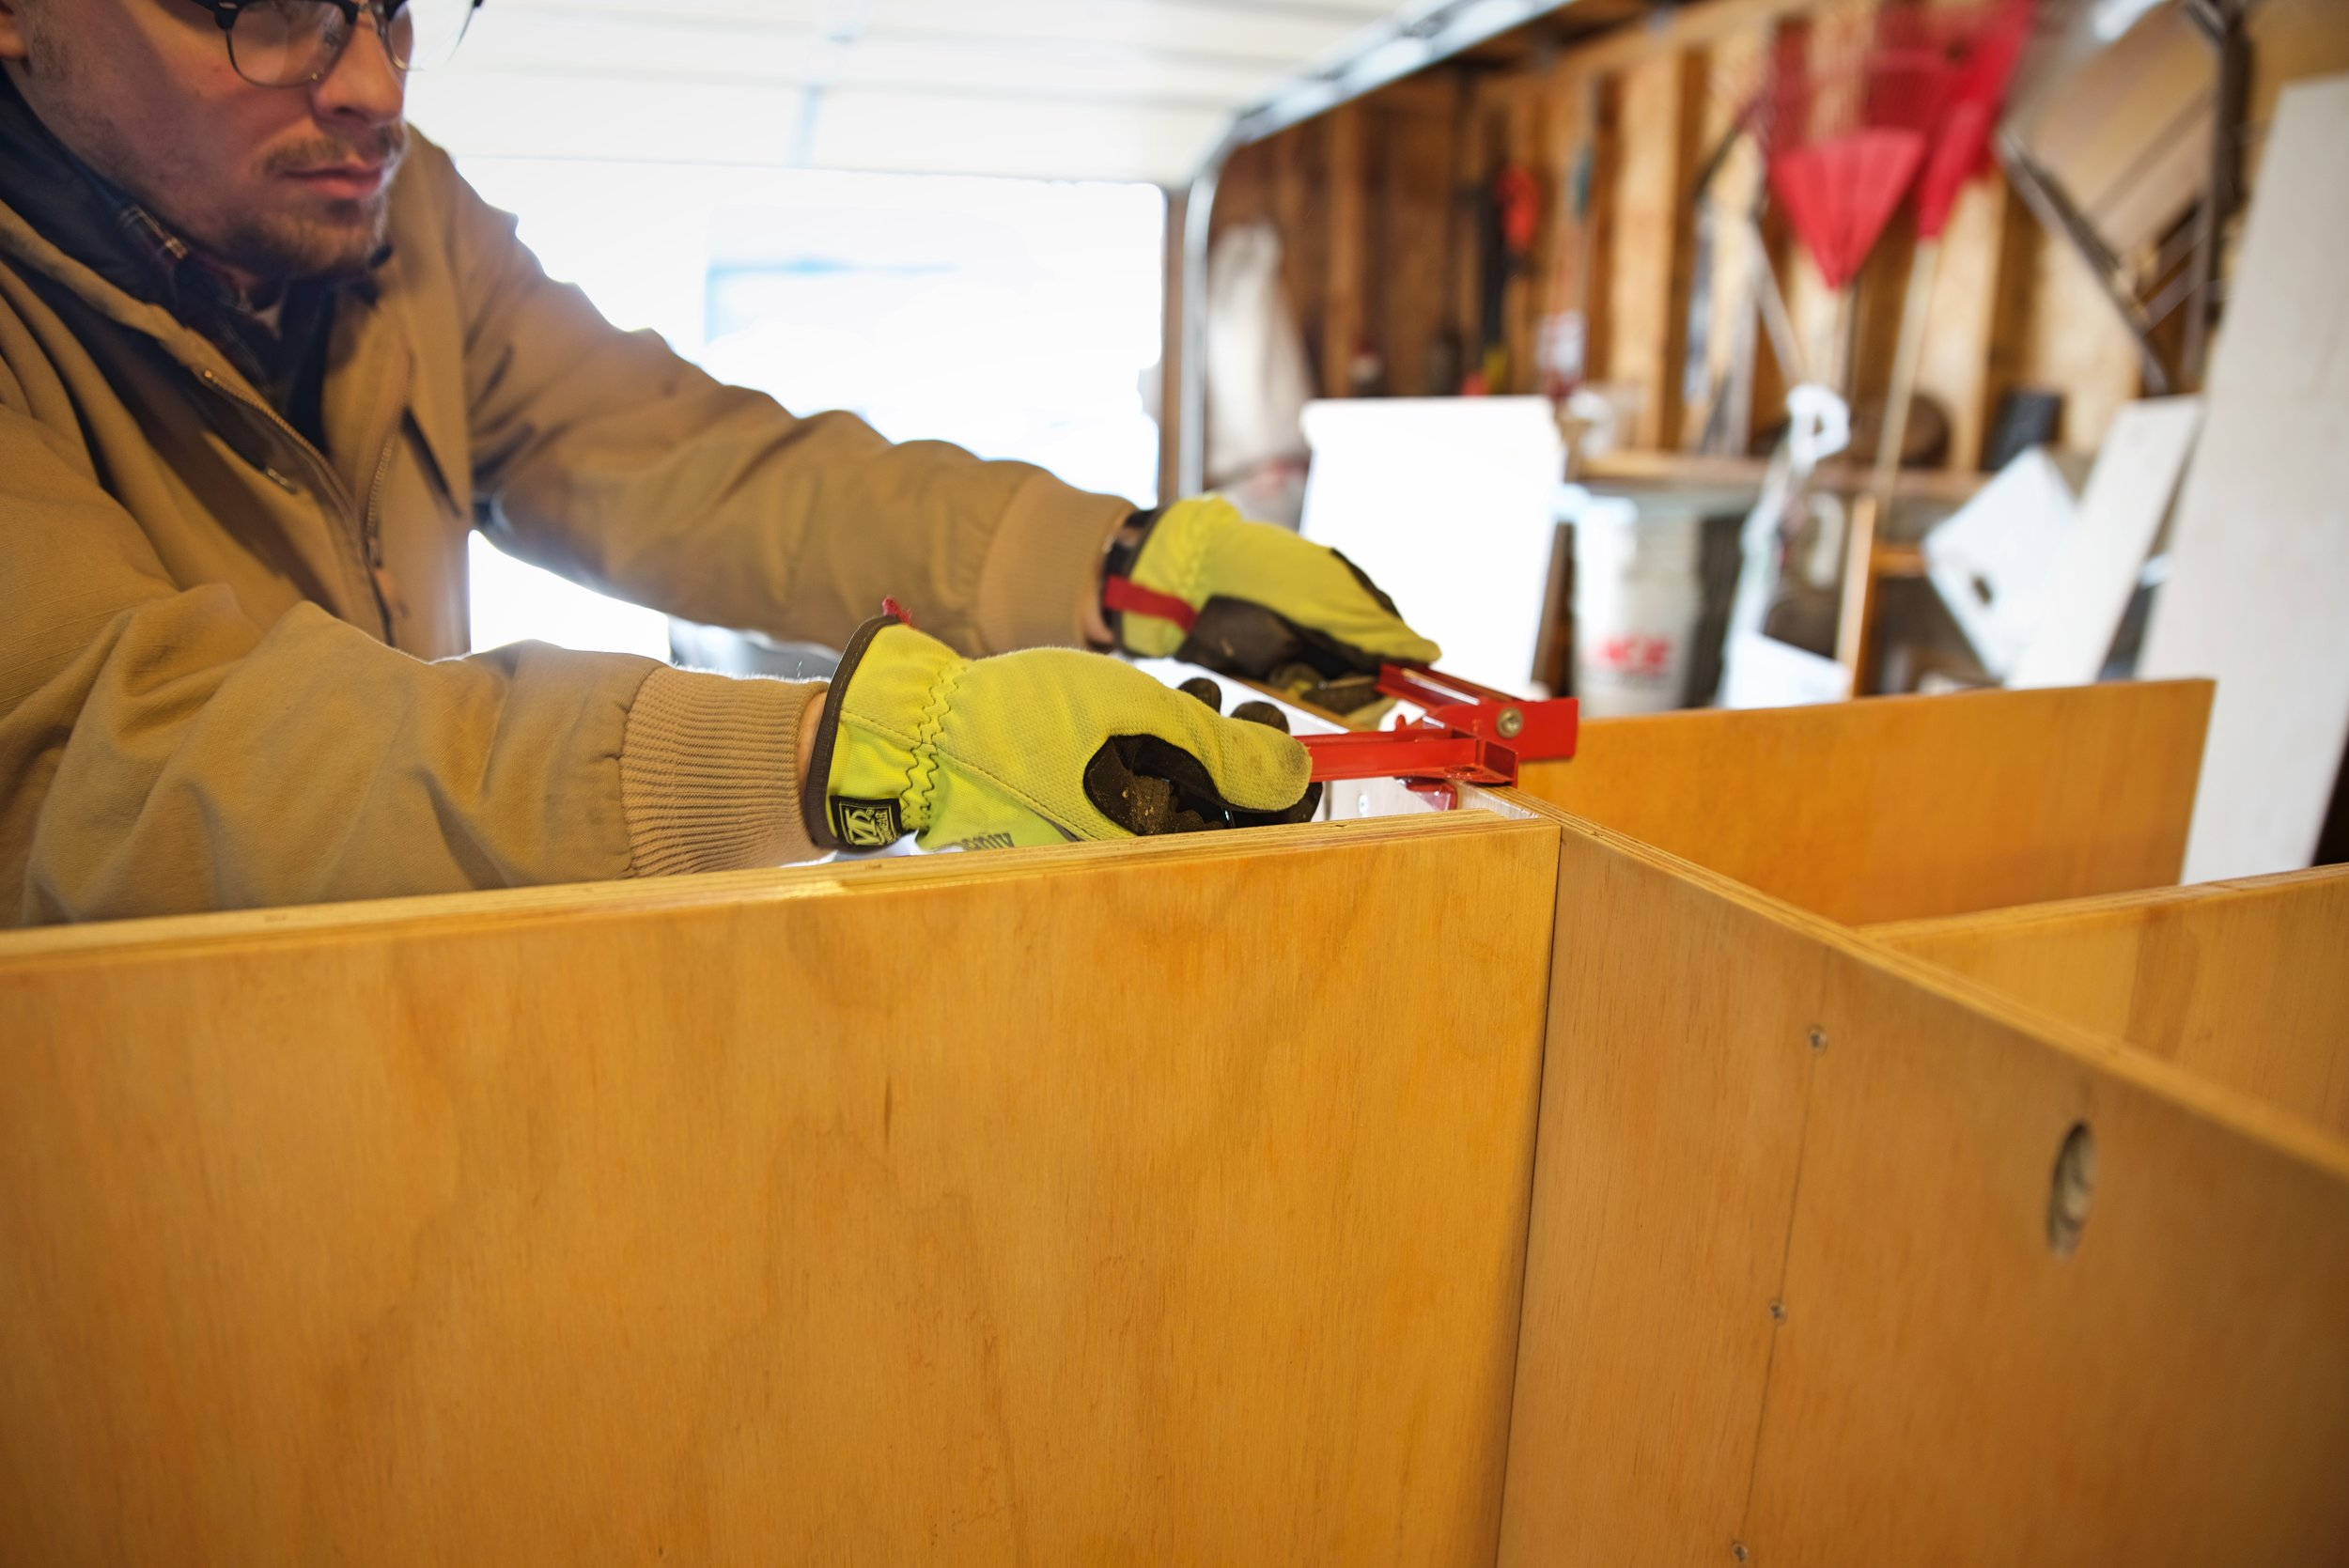 Ian removes a corner clamp after joining the chuck box shelf to the cabinet case.